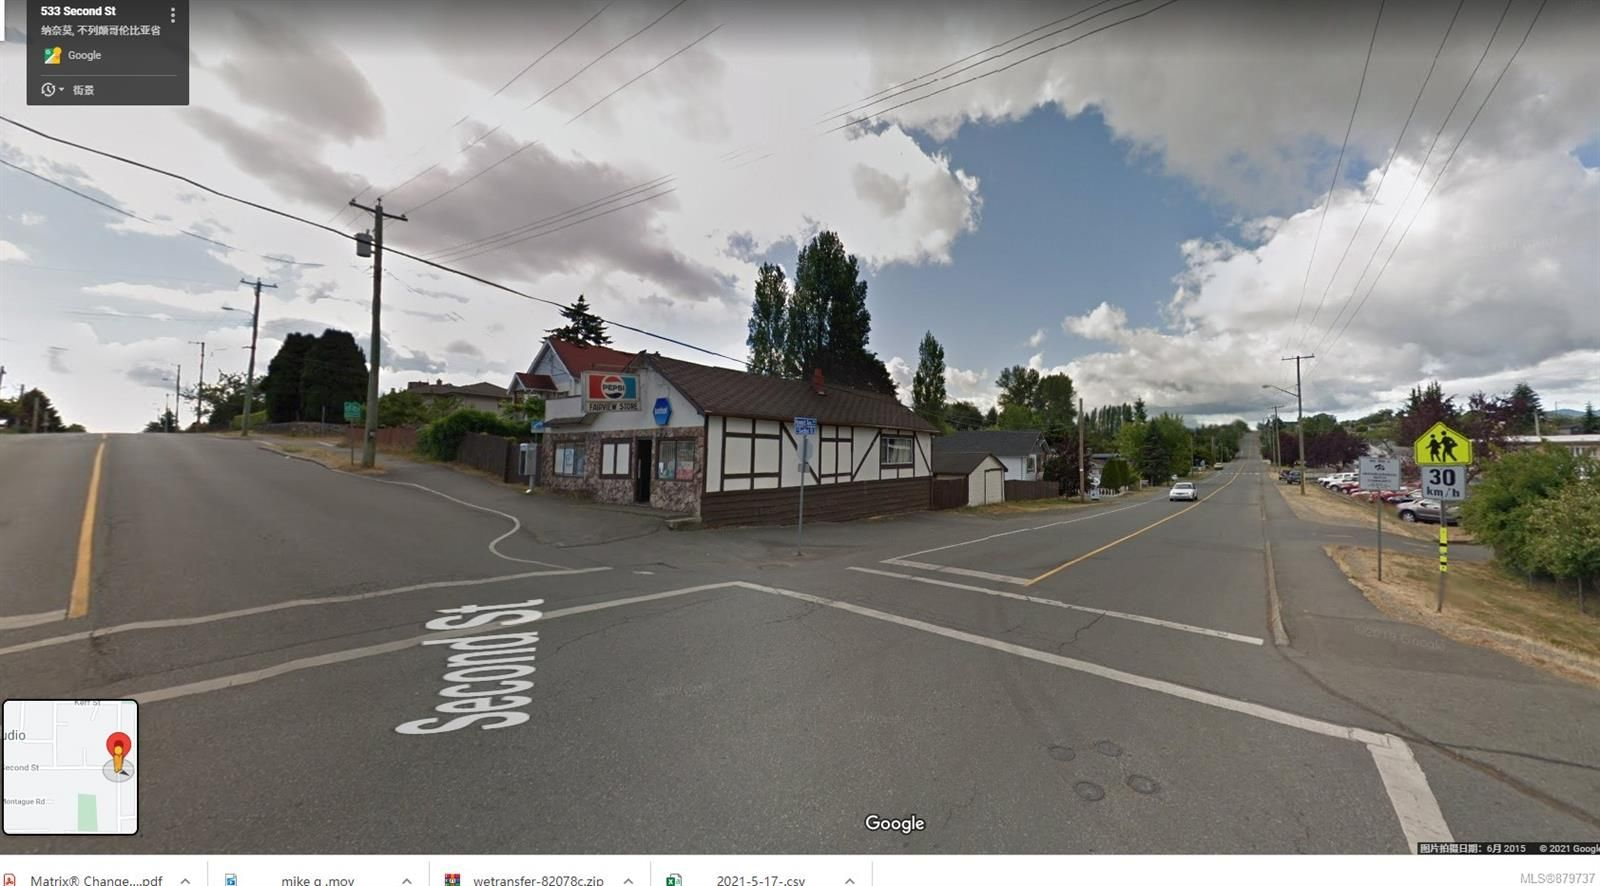 Main Photo: 531 2nd St in : Na University District Mixed Use for sale (Nanaimo)  : MLS®# 879737